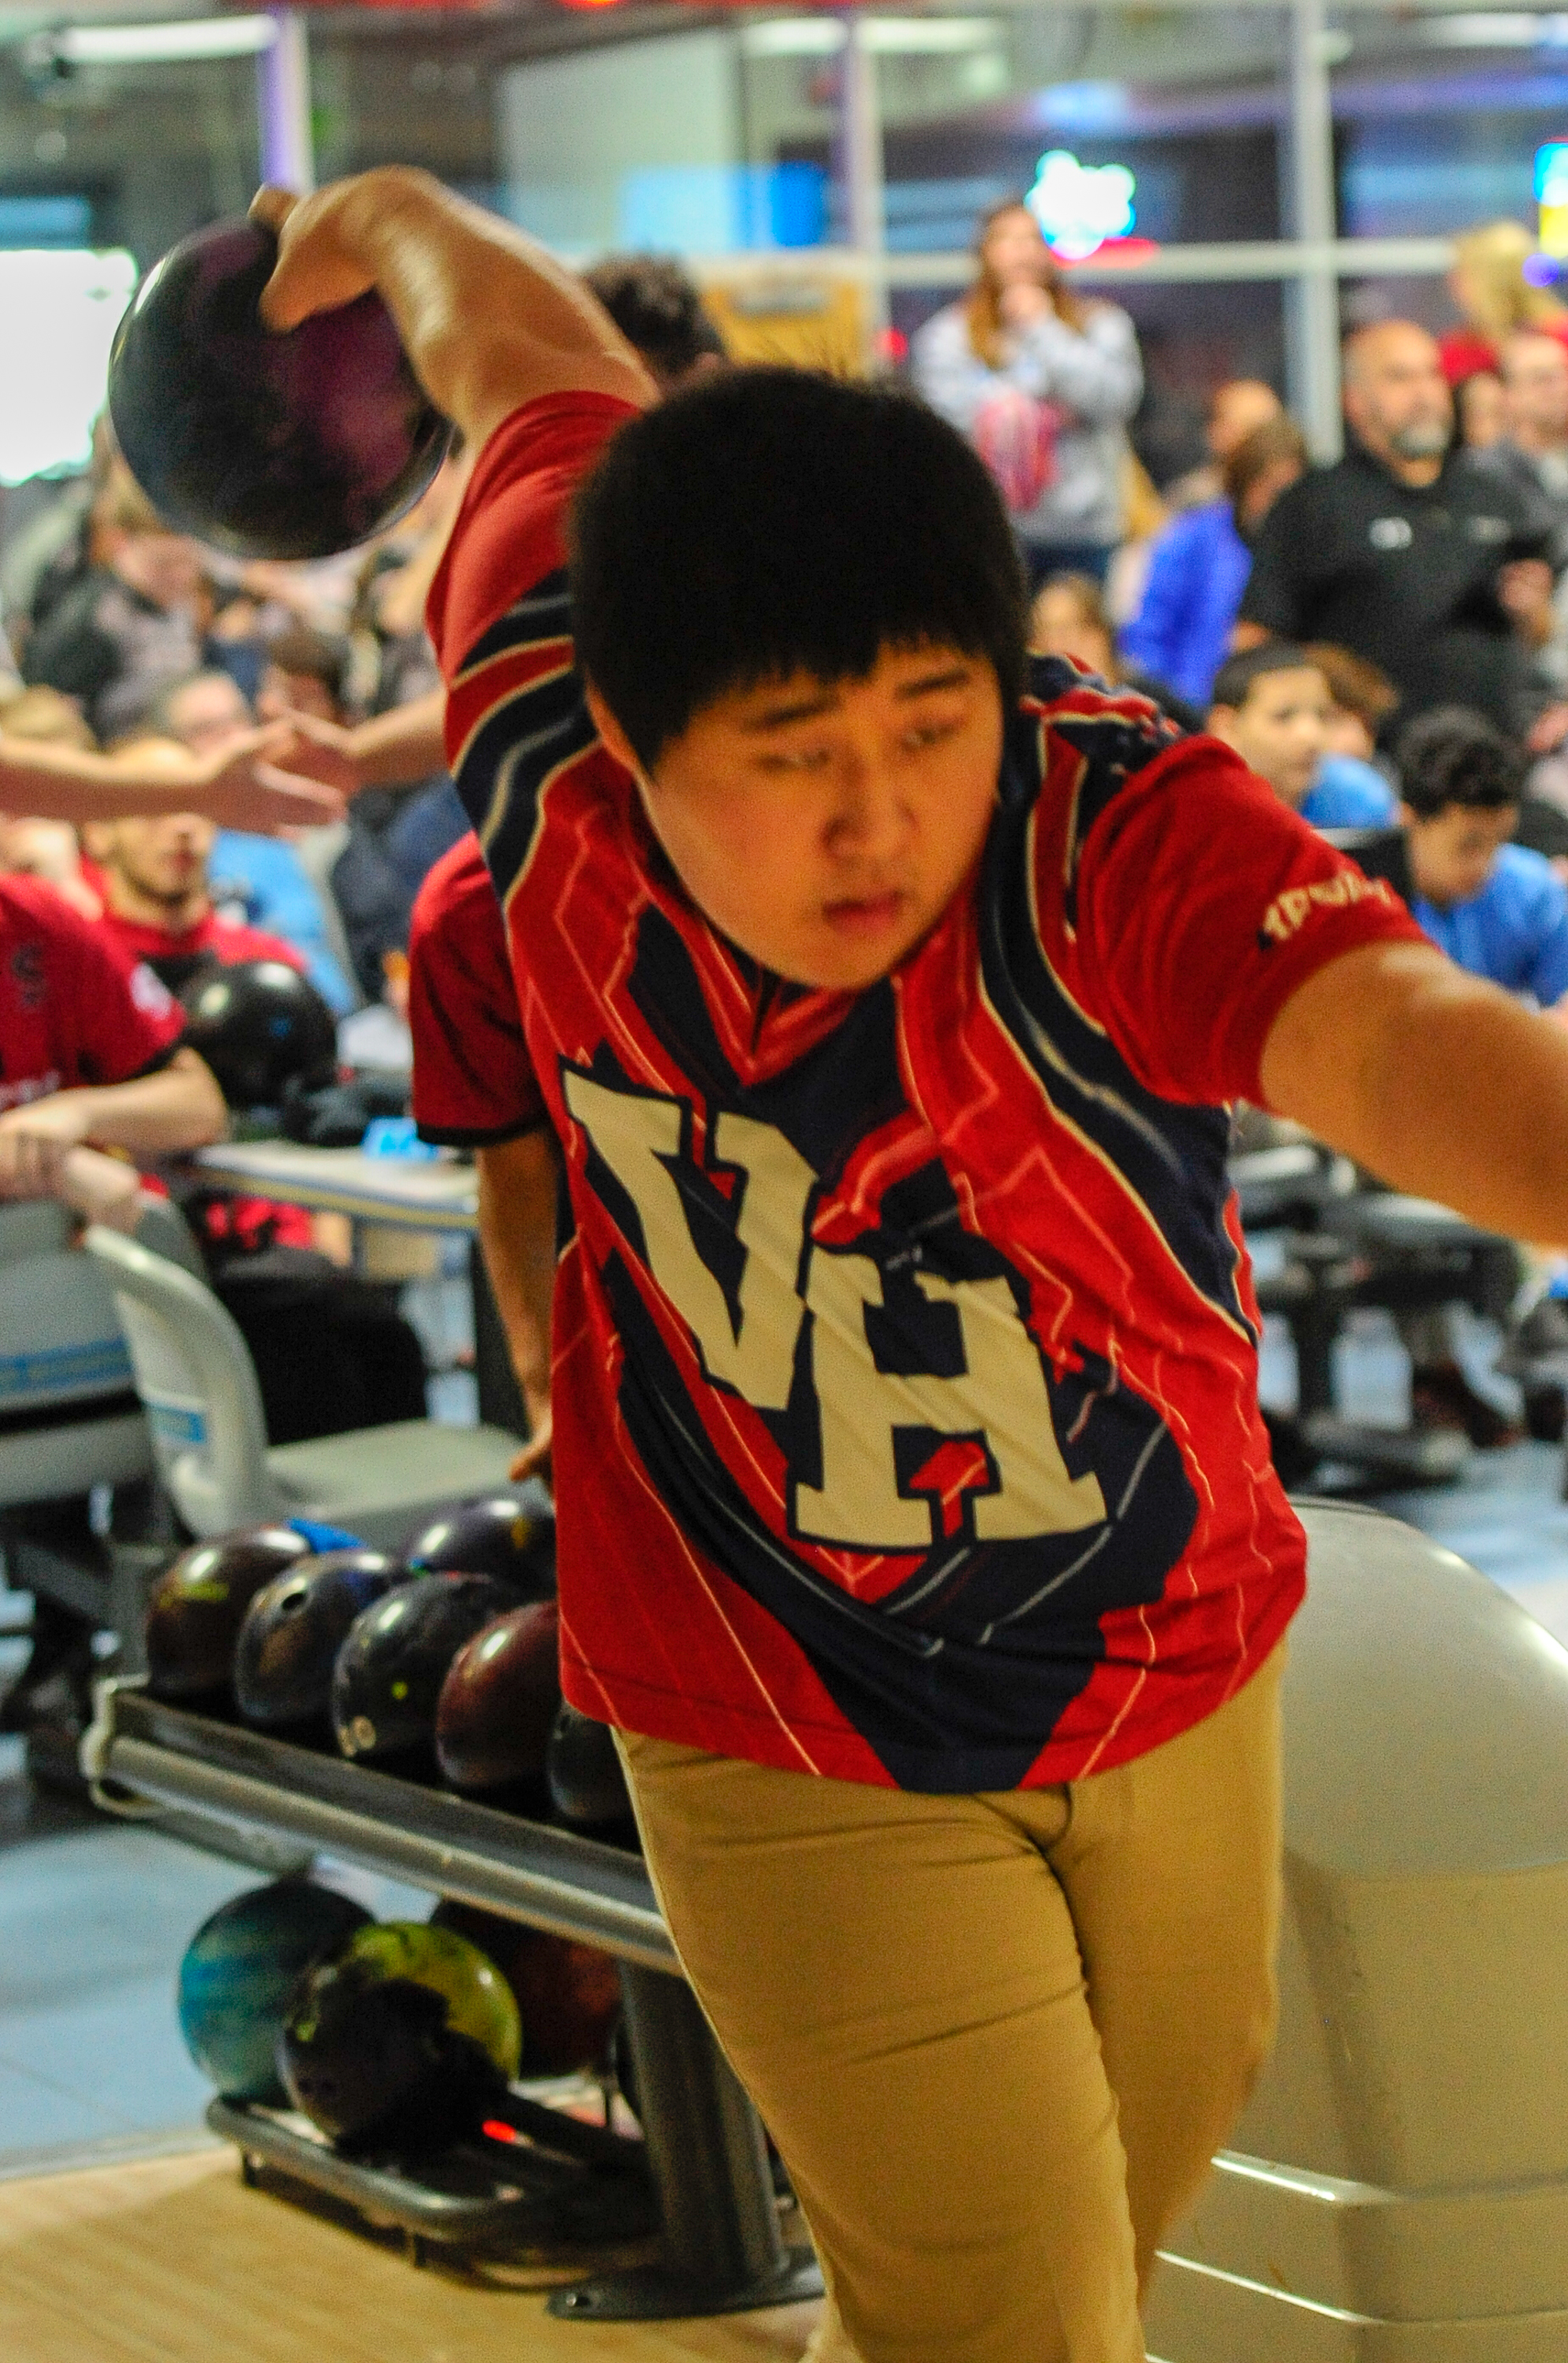 Southside Claims Third Straight Bowling Title; Vestavia Hills Boys Win First Boys' Title